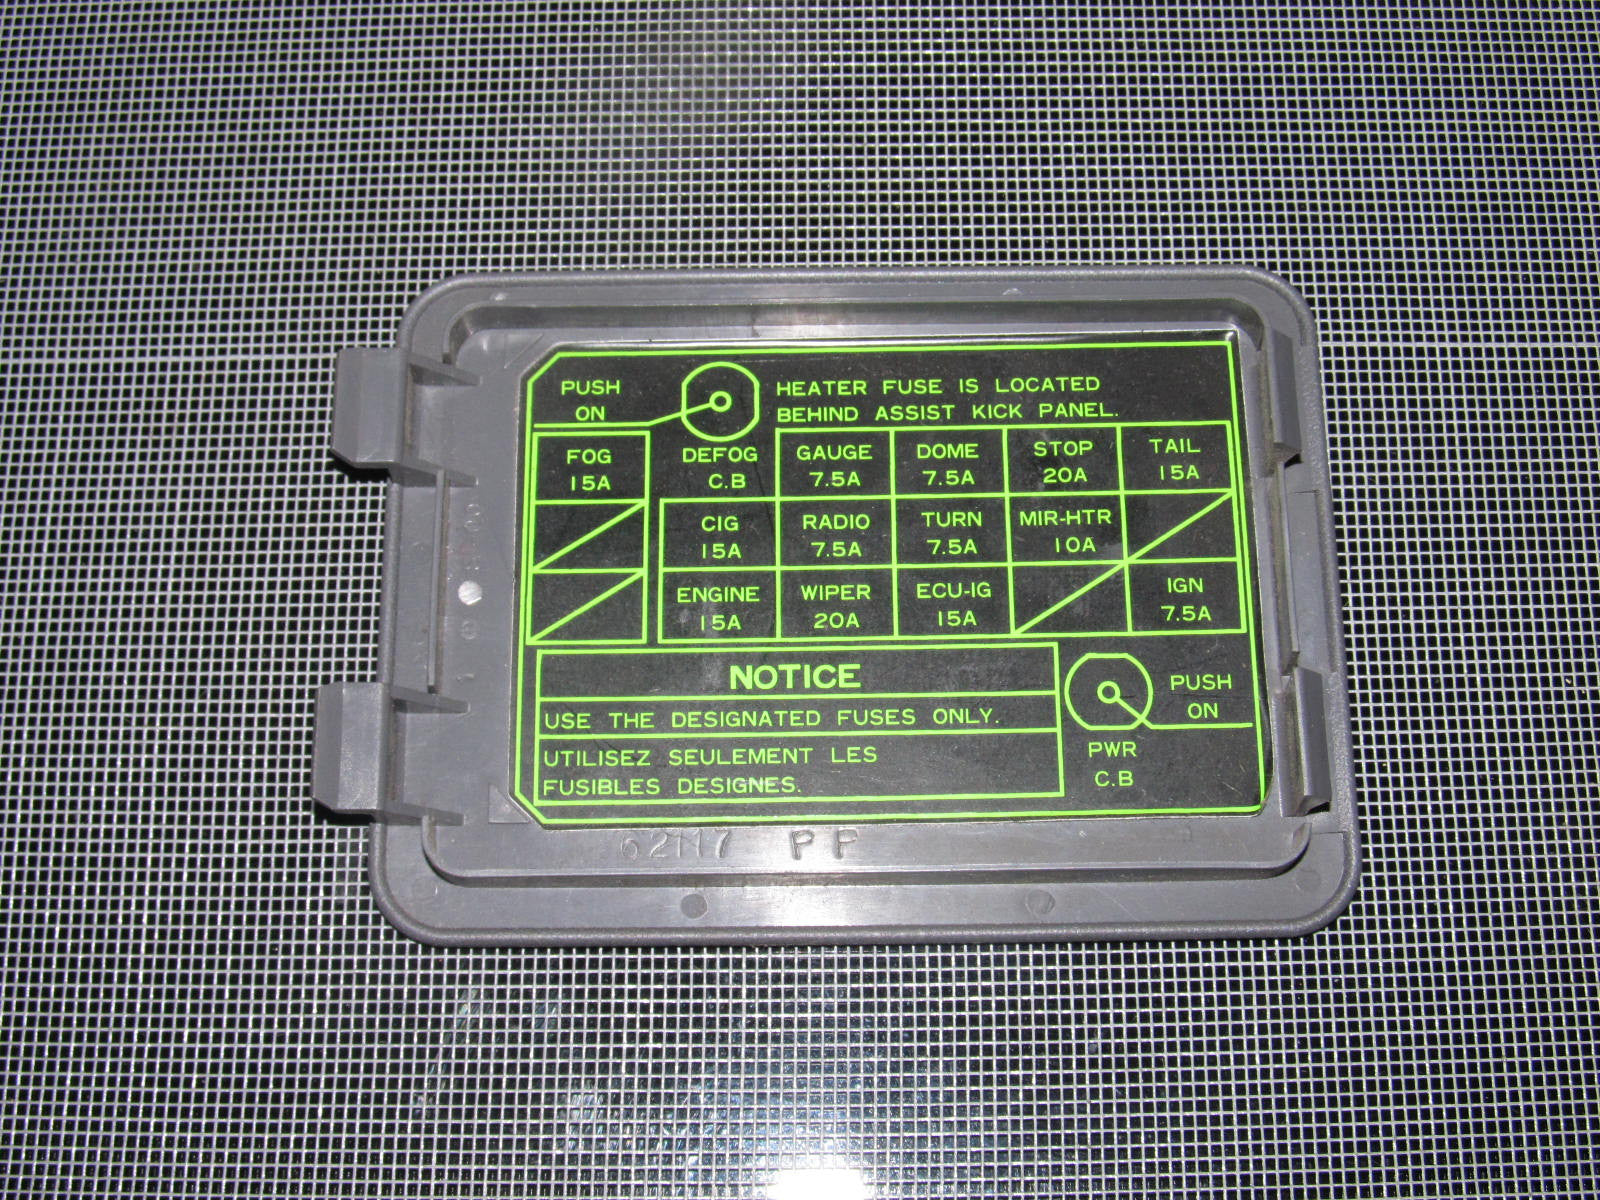 1987 Toyotum Celica Fuse Panel Diagram